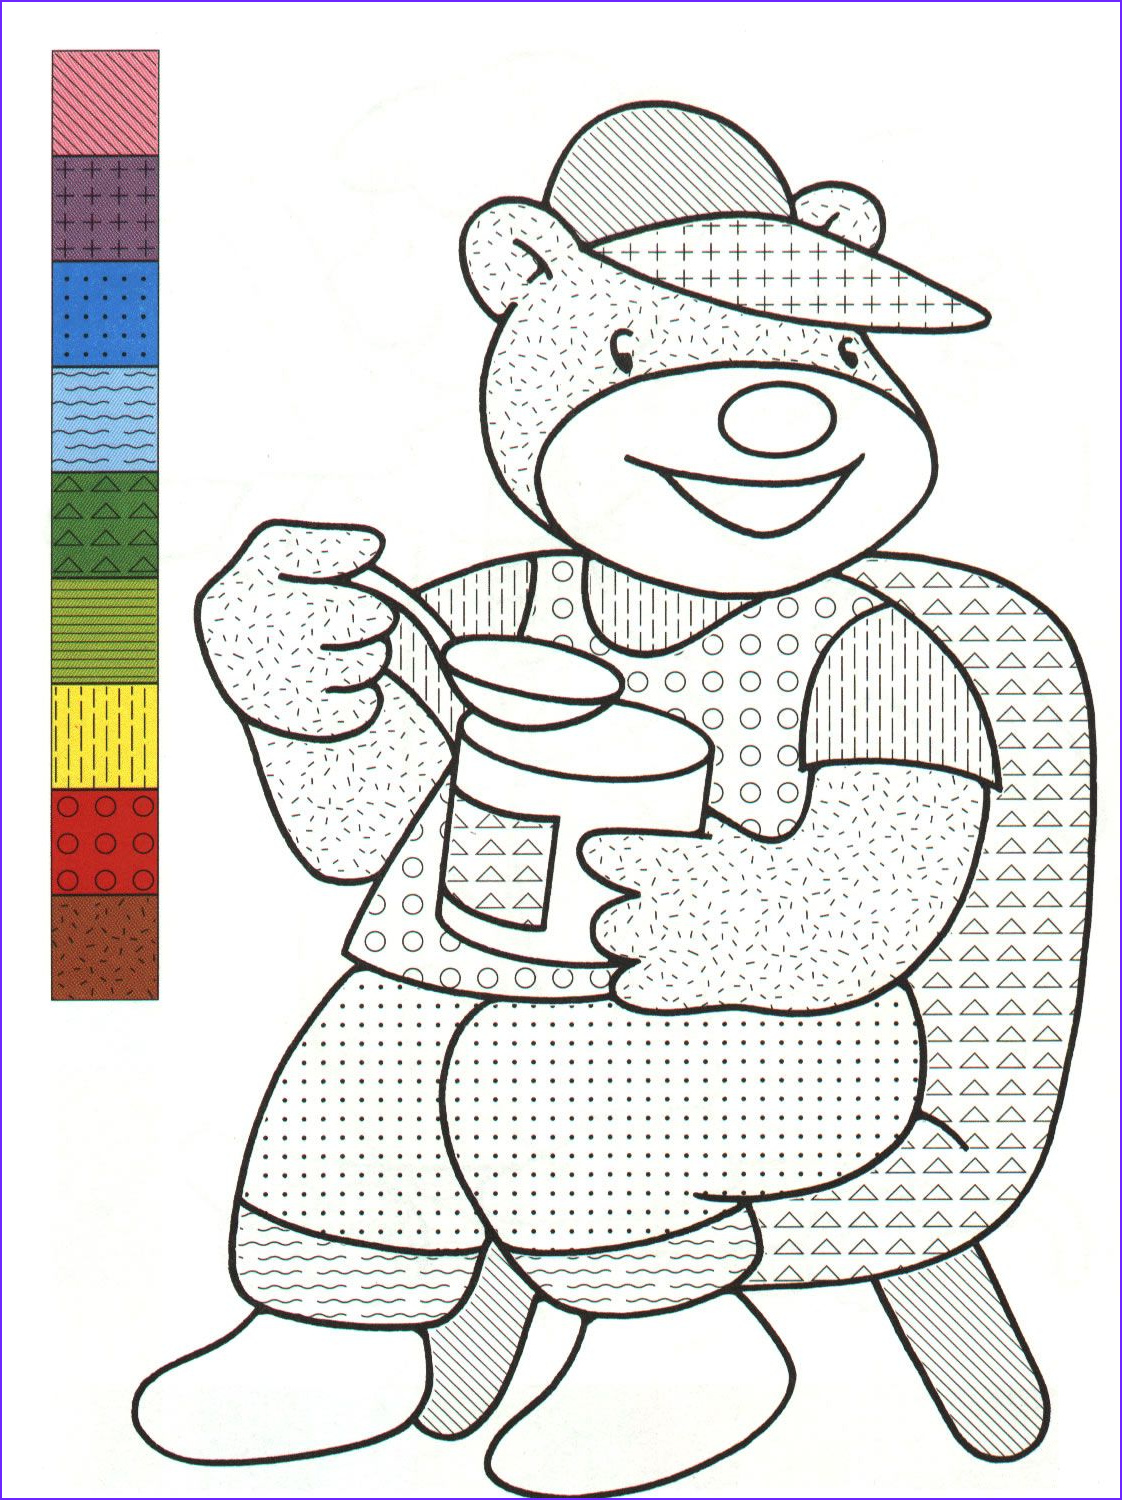 999 Coloring Pages Elegant Stock Color Pattern 999 Coloring Pages